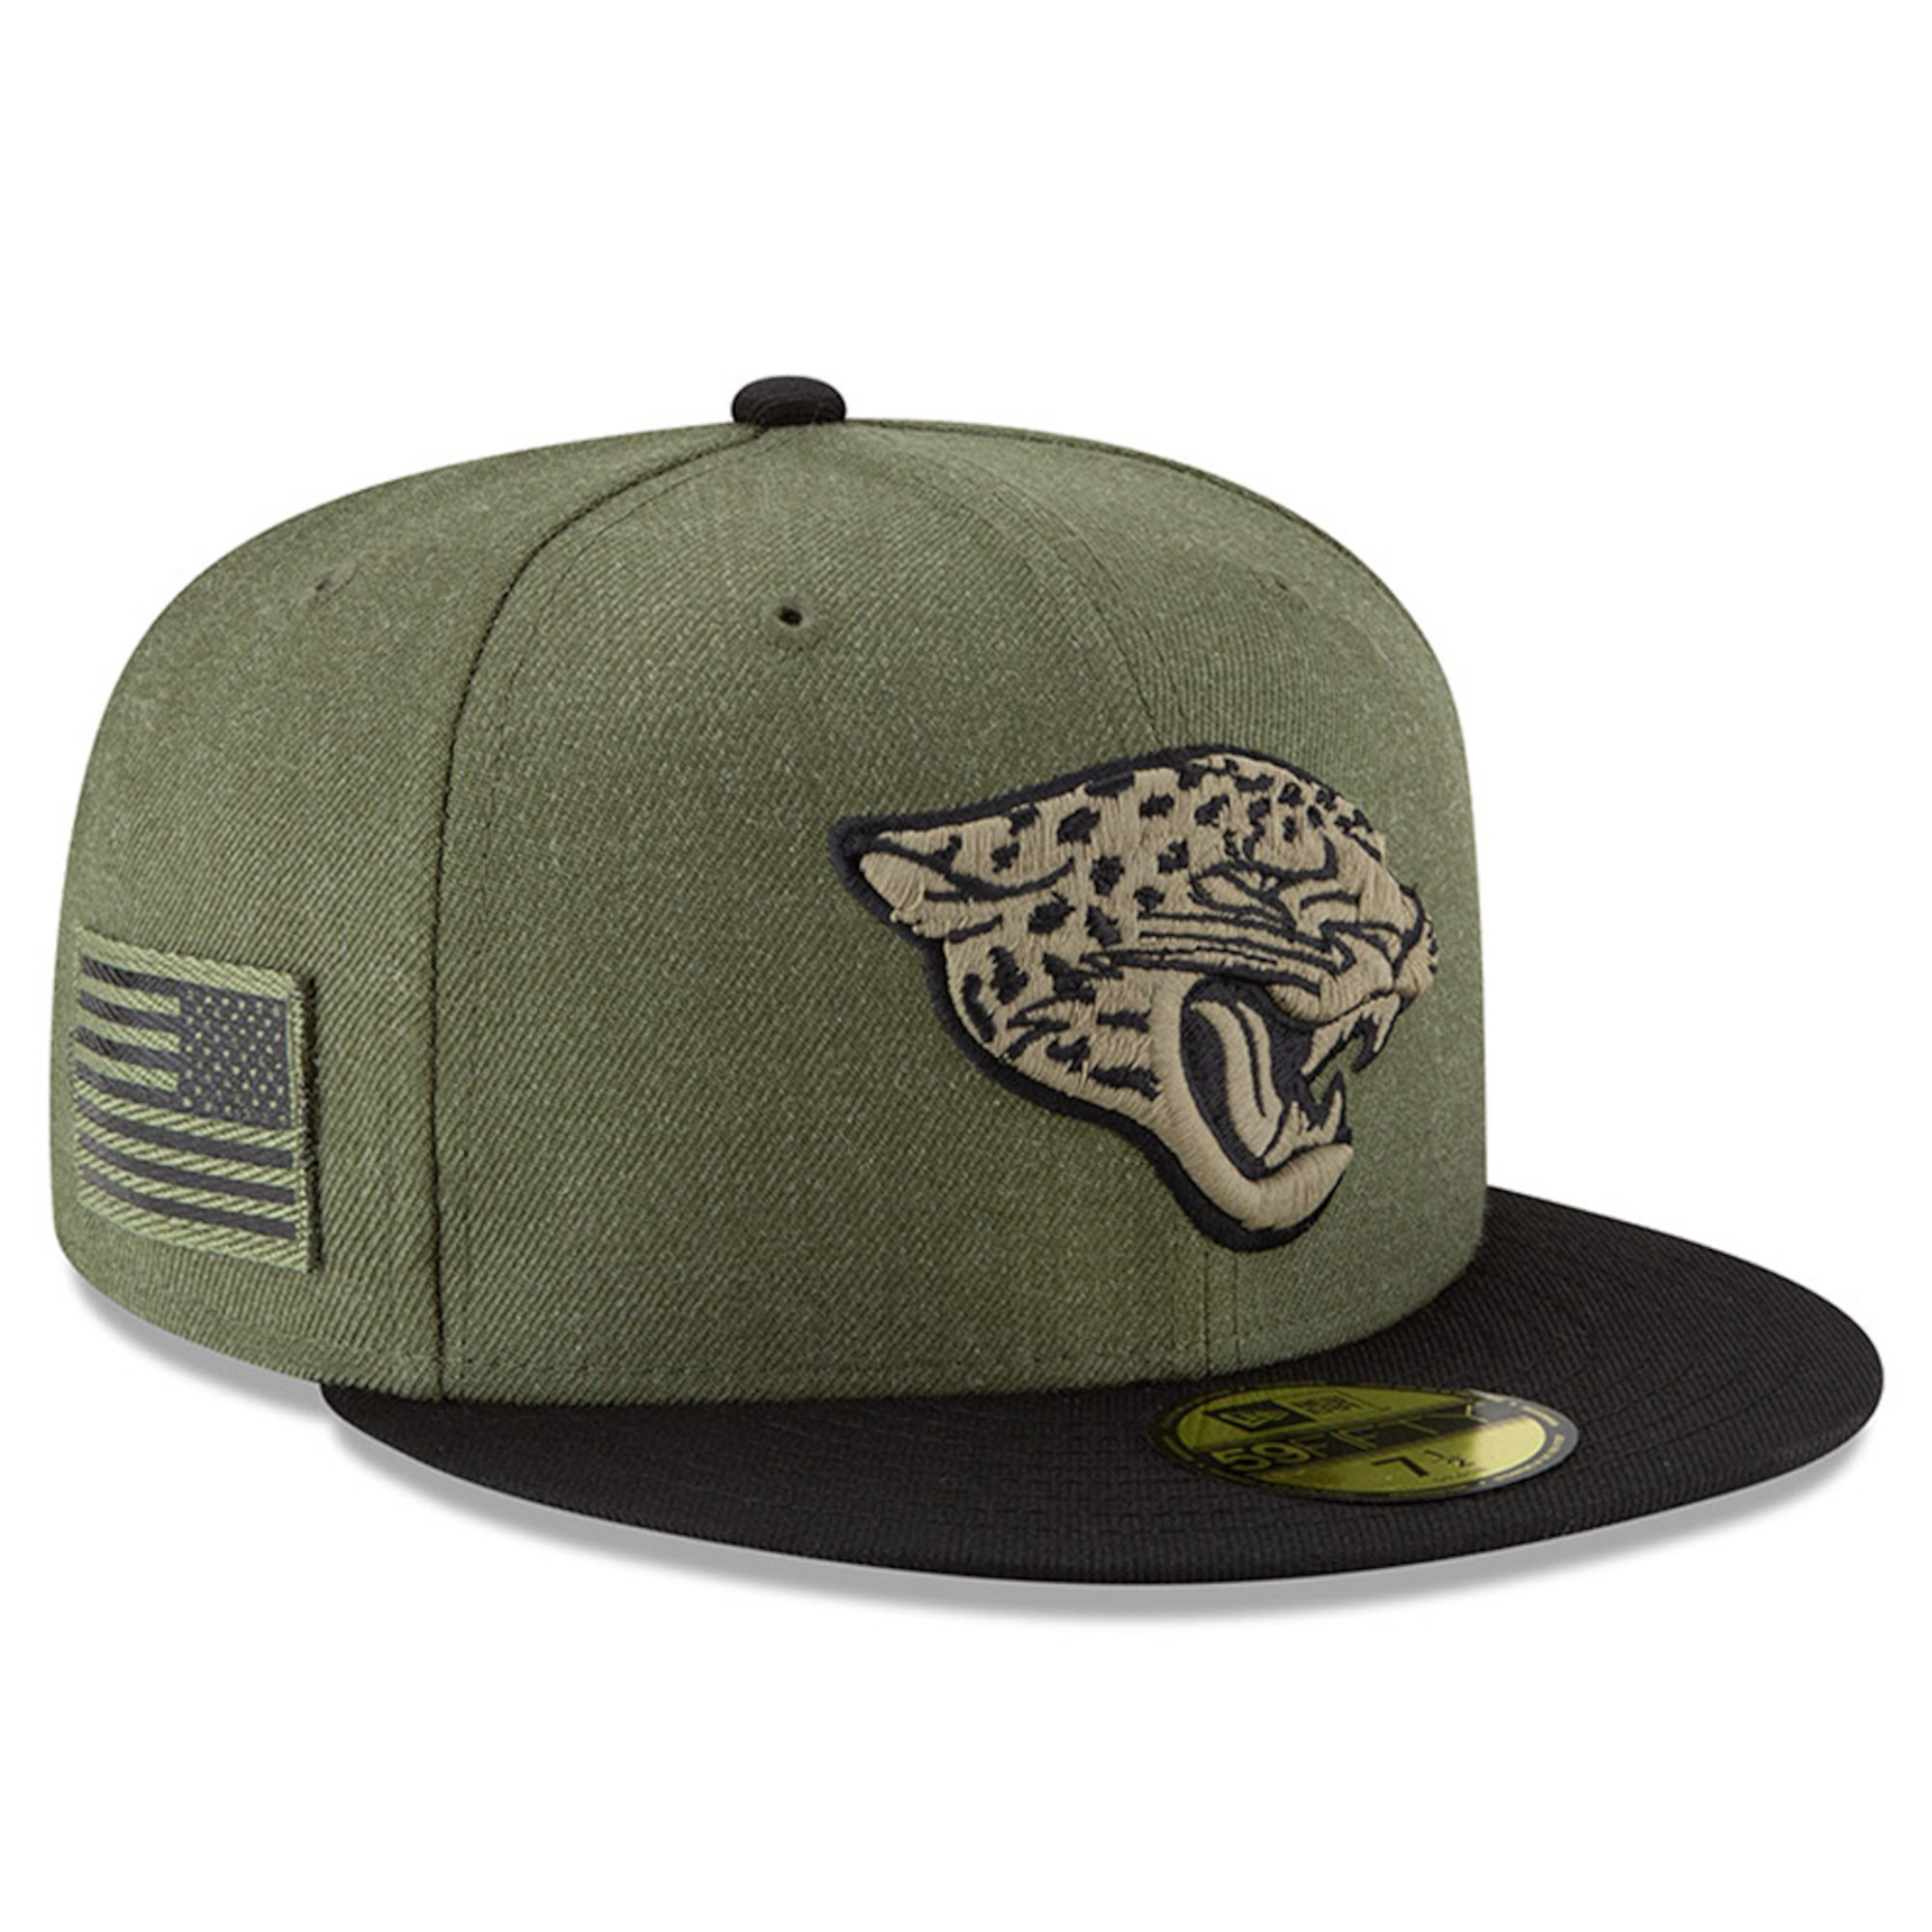 c6680ae48524d Details about NEW ERA Jacksonville Jaguars Salute to Service 59FIFTY Fitted  Hat Cap NFL